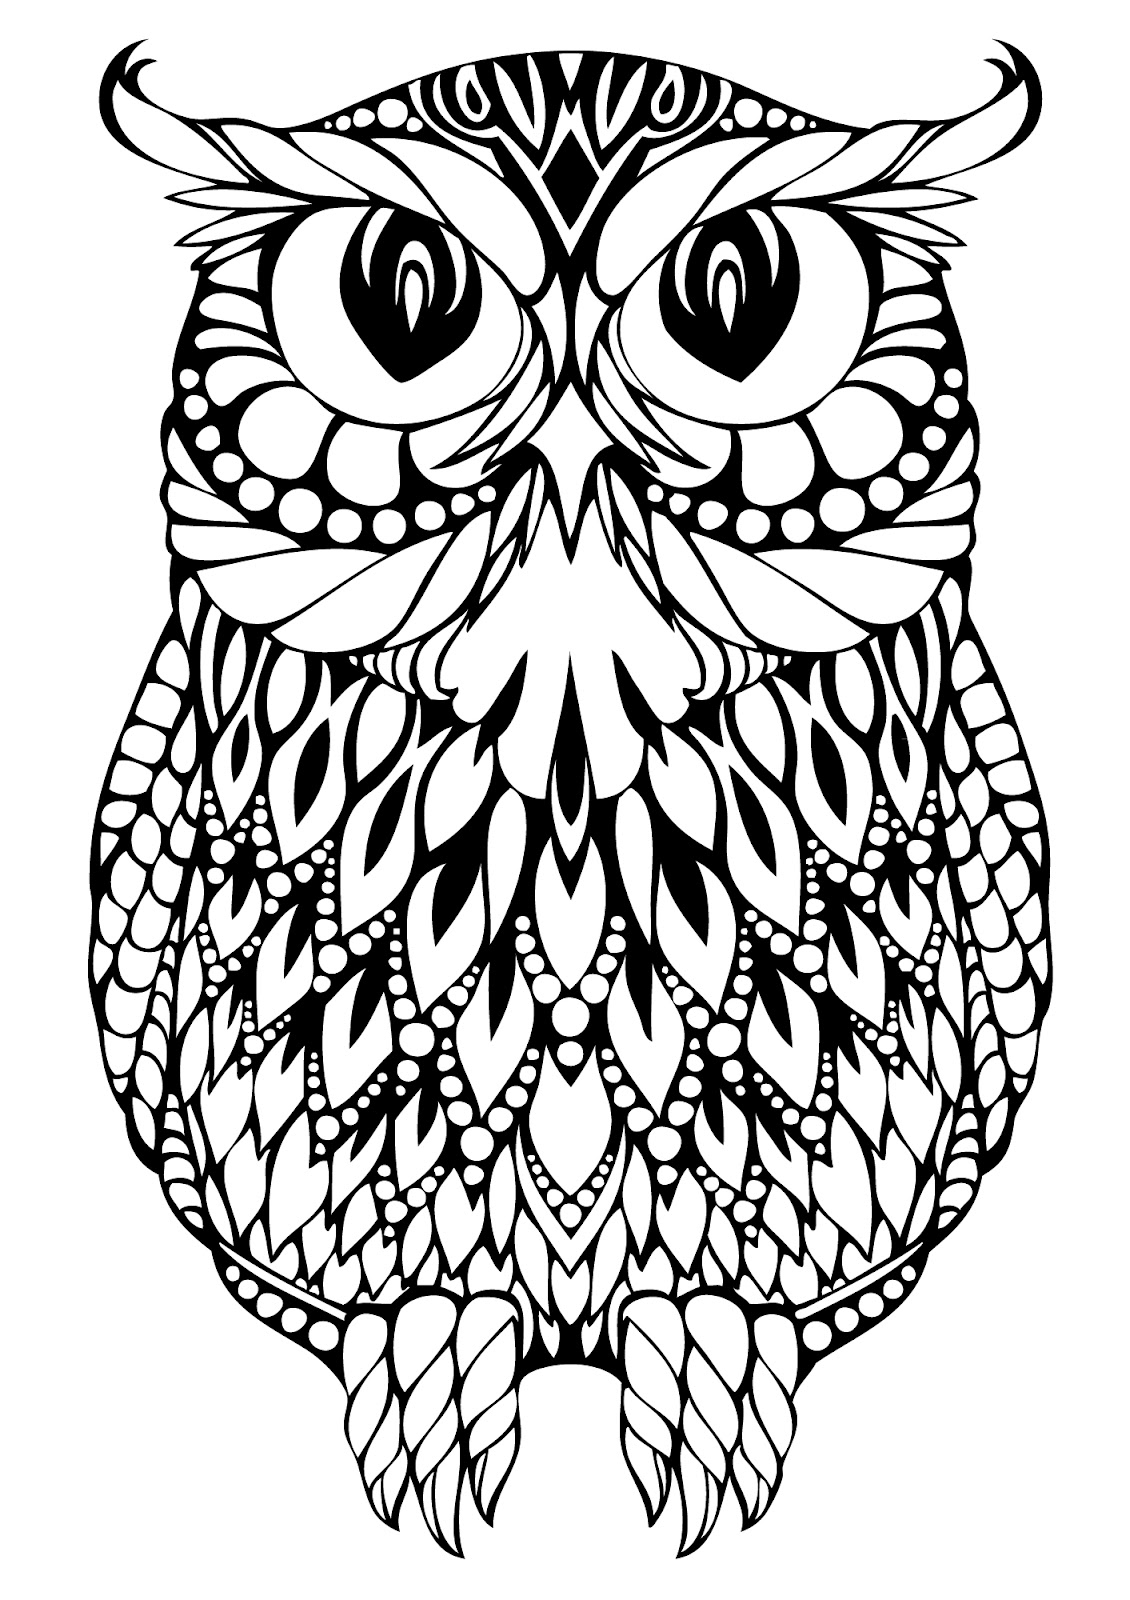 Top 10 Cute Owl Hard Coloring Pages Image - Free Coloring ...